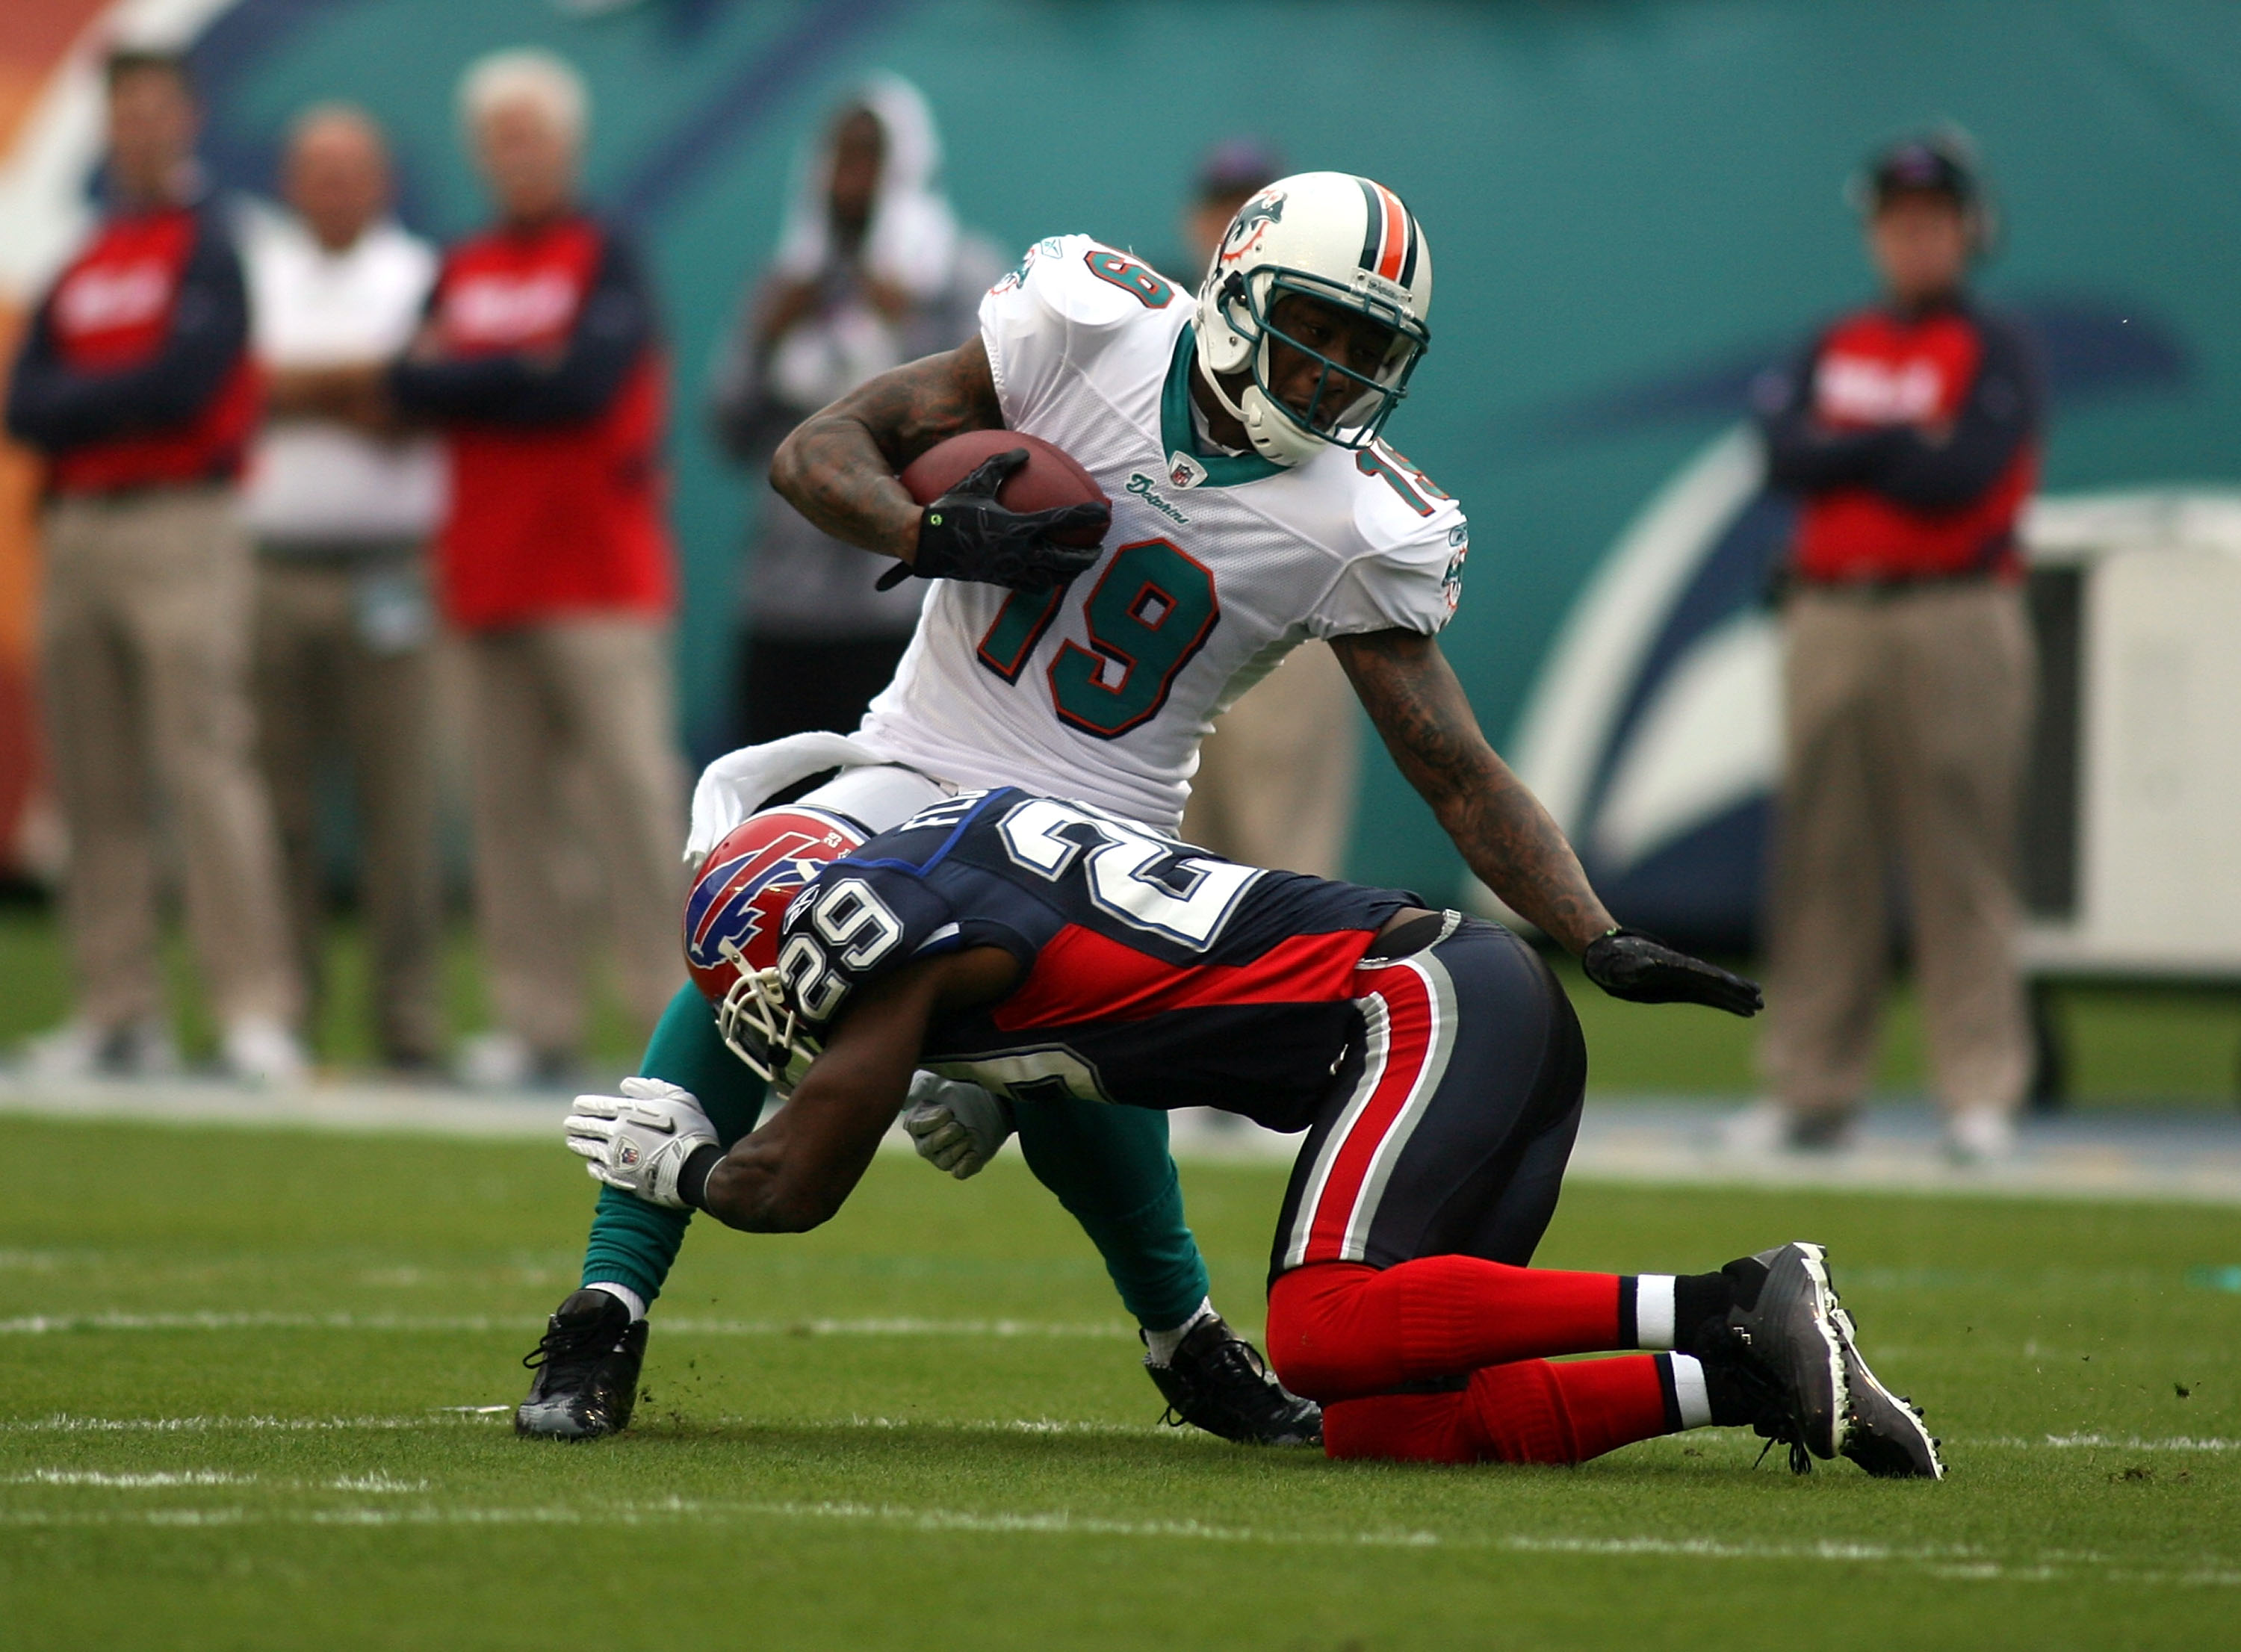 MIAMI - DECEMBER 19:  Receiver Brandon Marshall #19 of the Miami Dolphins makes a catch against the Buffalo Bills at Sun Life Stadium on December 19, 2010 in Miami, Florida. The Bills defeated the Dolphins 17-14.  (Photo by Marc Serota/Getty Images)